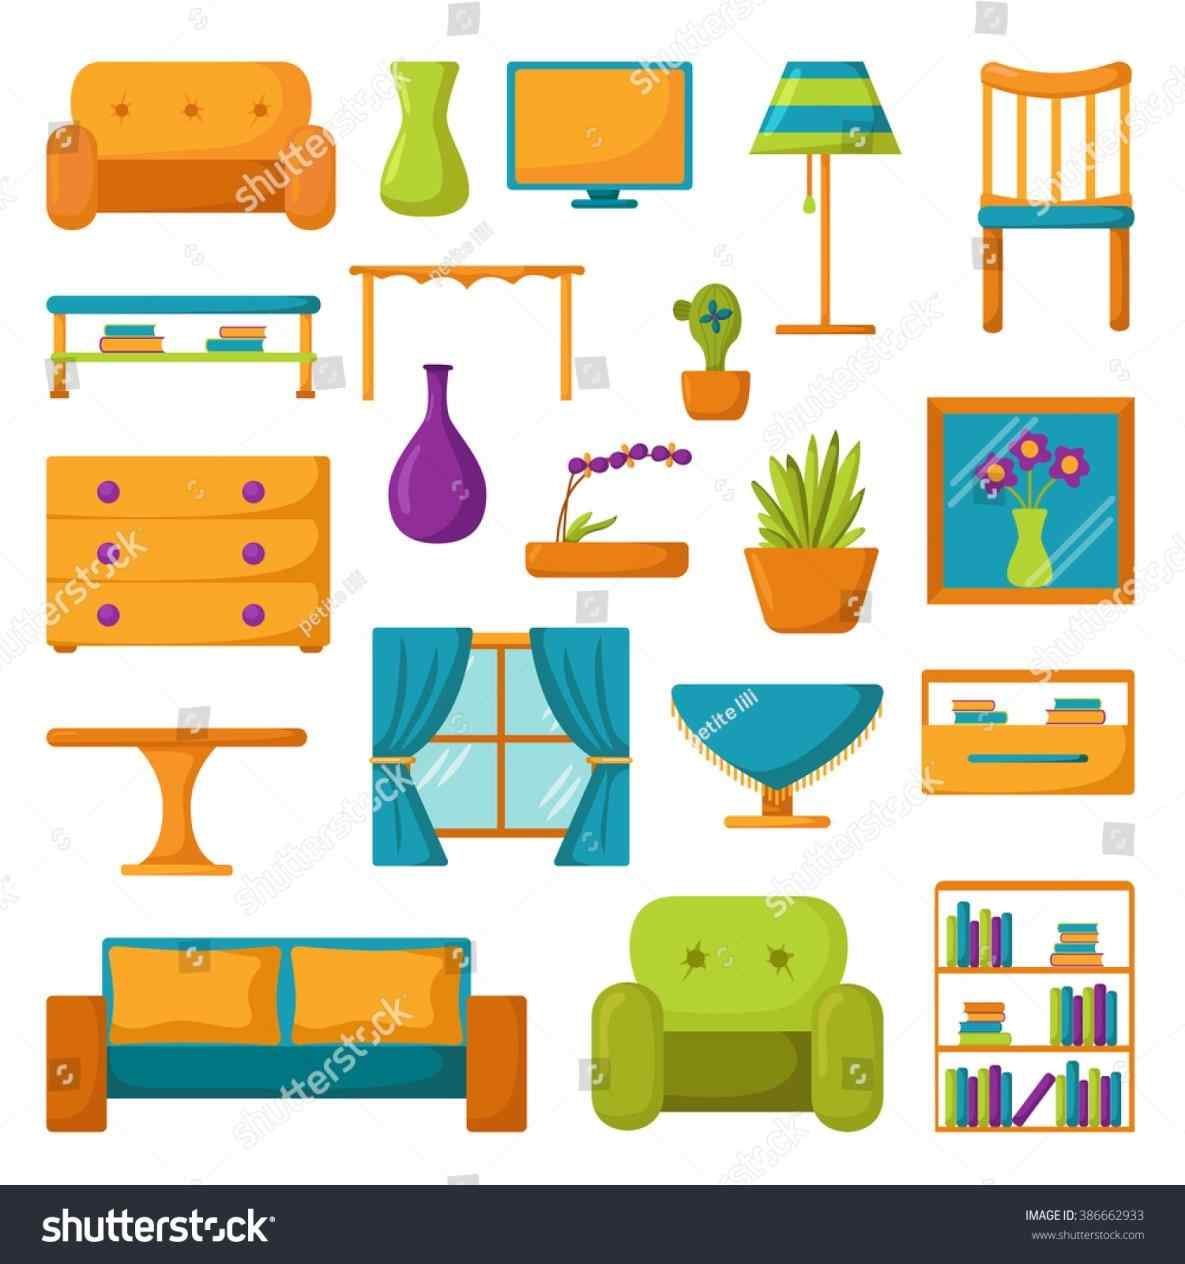 Bedroom clipart couch, Bedroom couch Transparent FREE for.